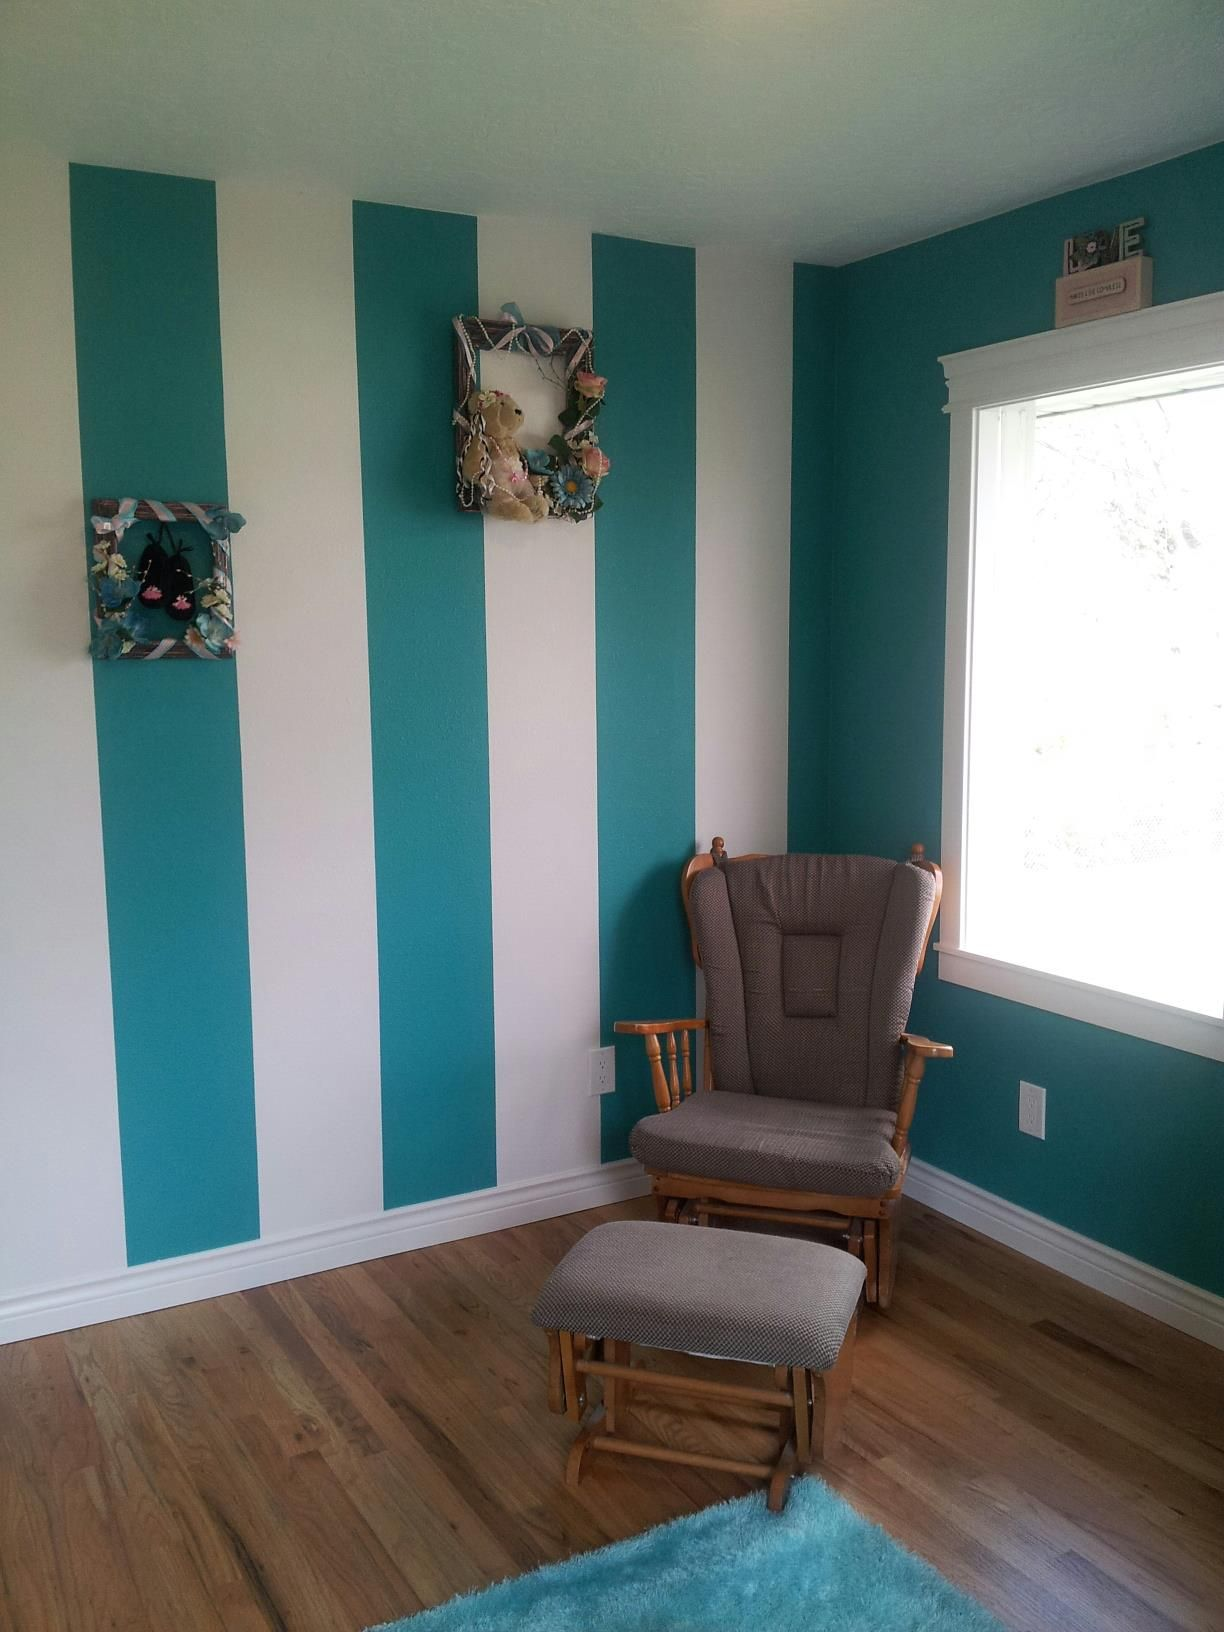 Striped Wall - Turquoise and White in 2019 | Turquoise room ...